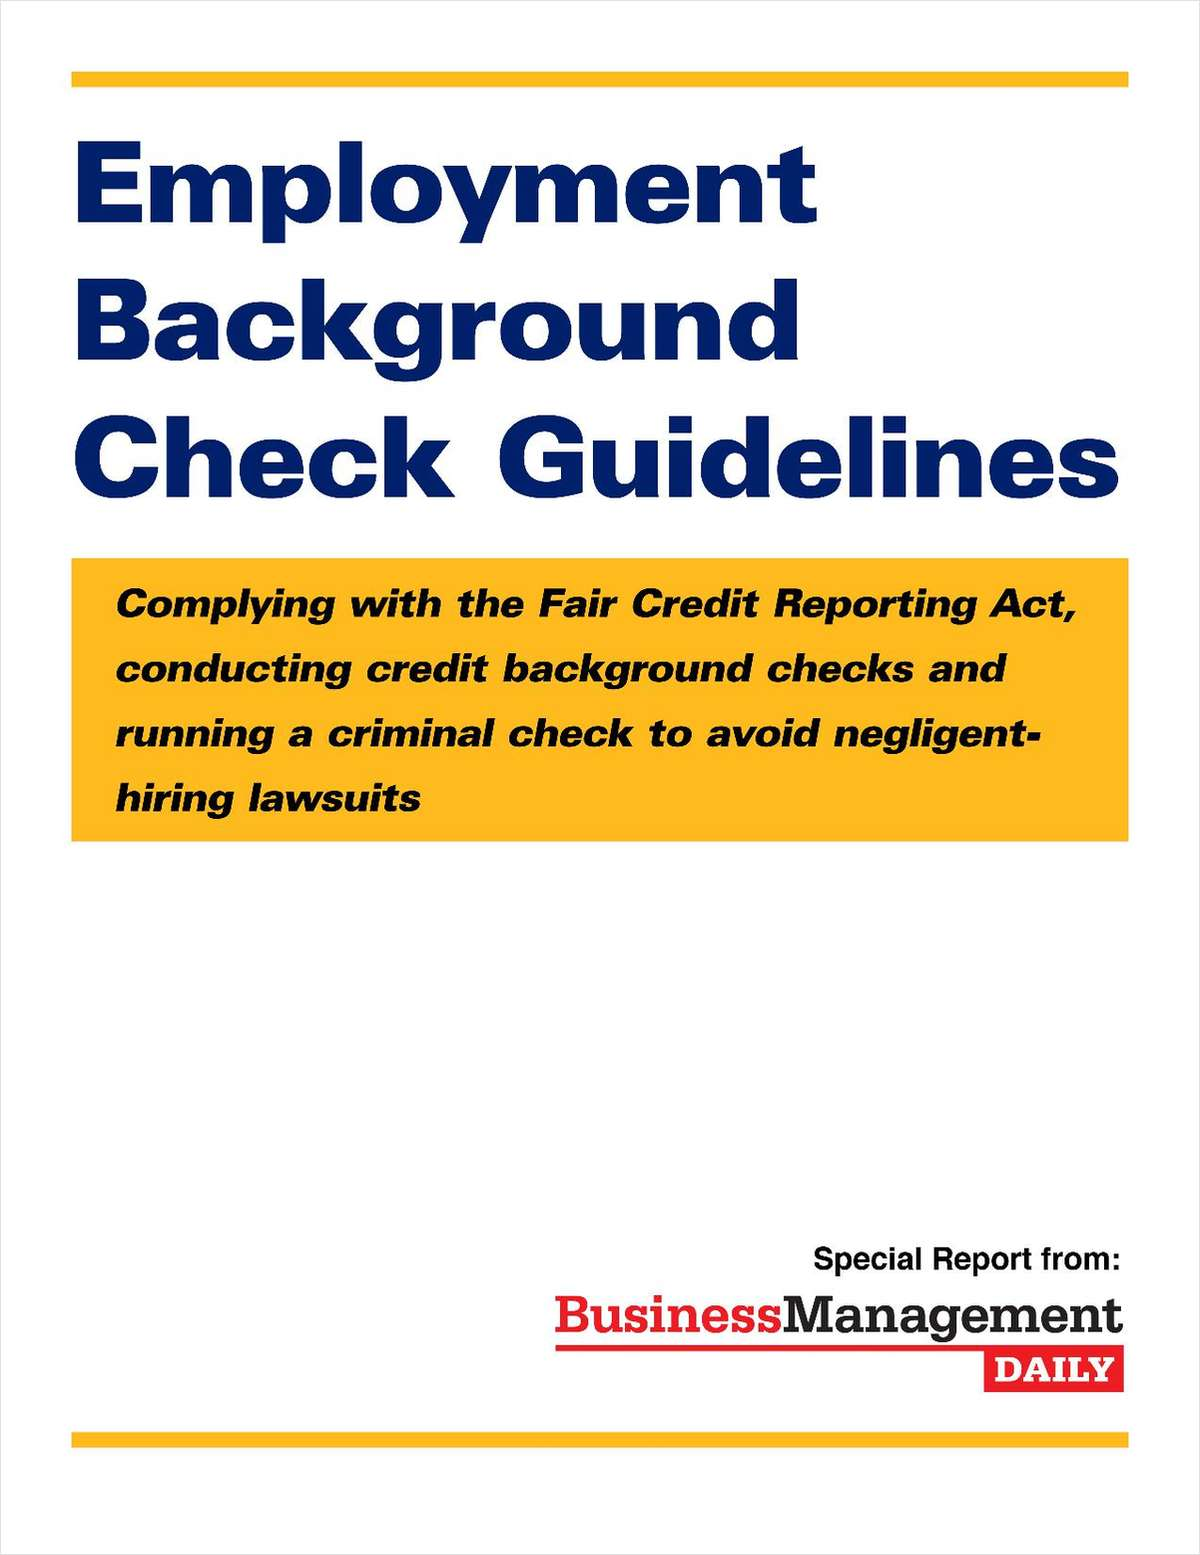 Employment Background Check Guidelines